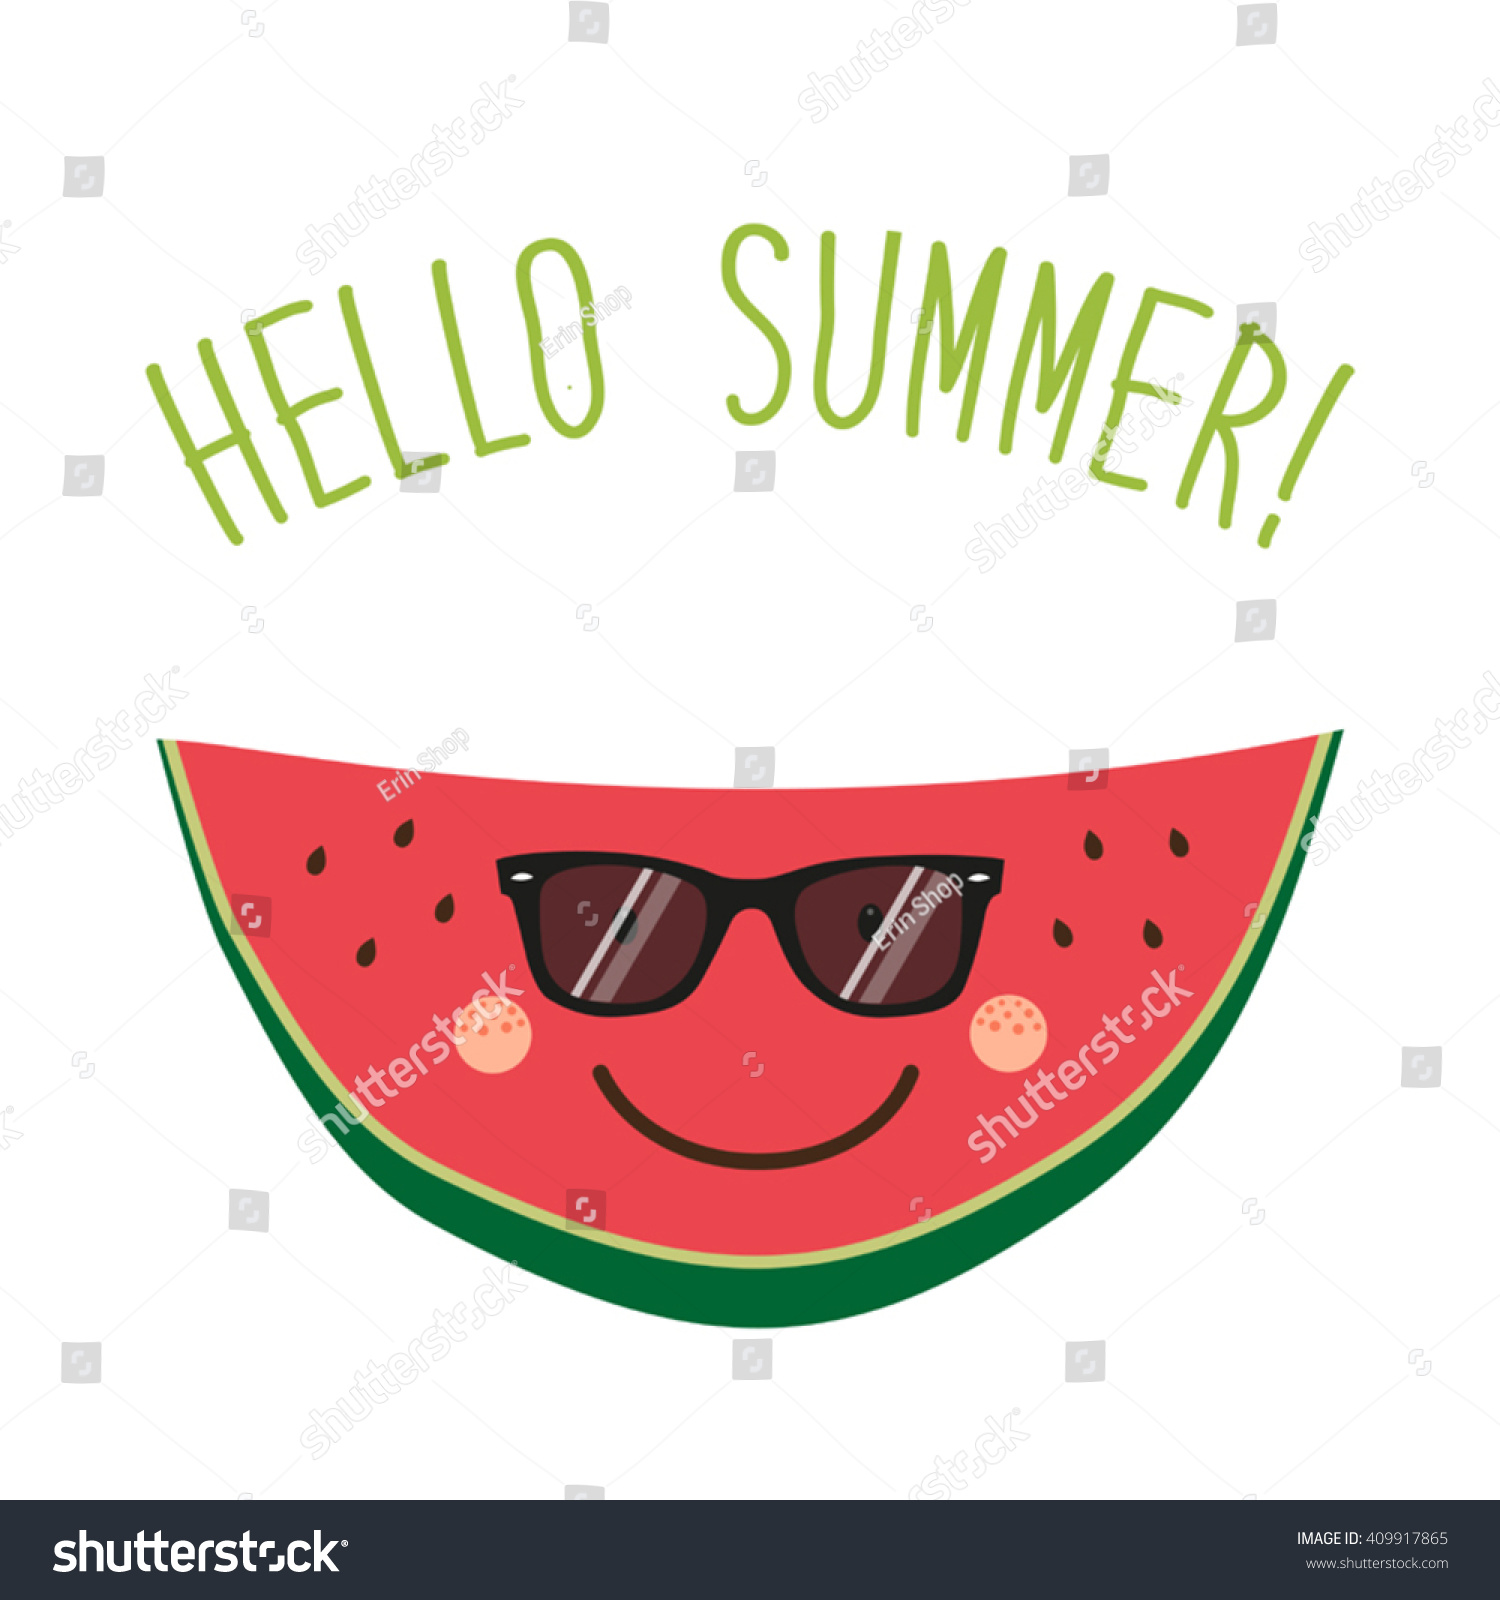 Ordinaire Cute Card Hello Summer As Funny Hand Drawn Cartoon Character Of Watermelon  And Hand Written Text